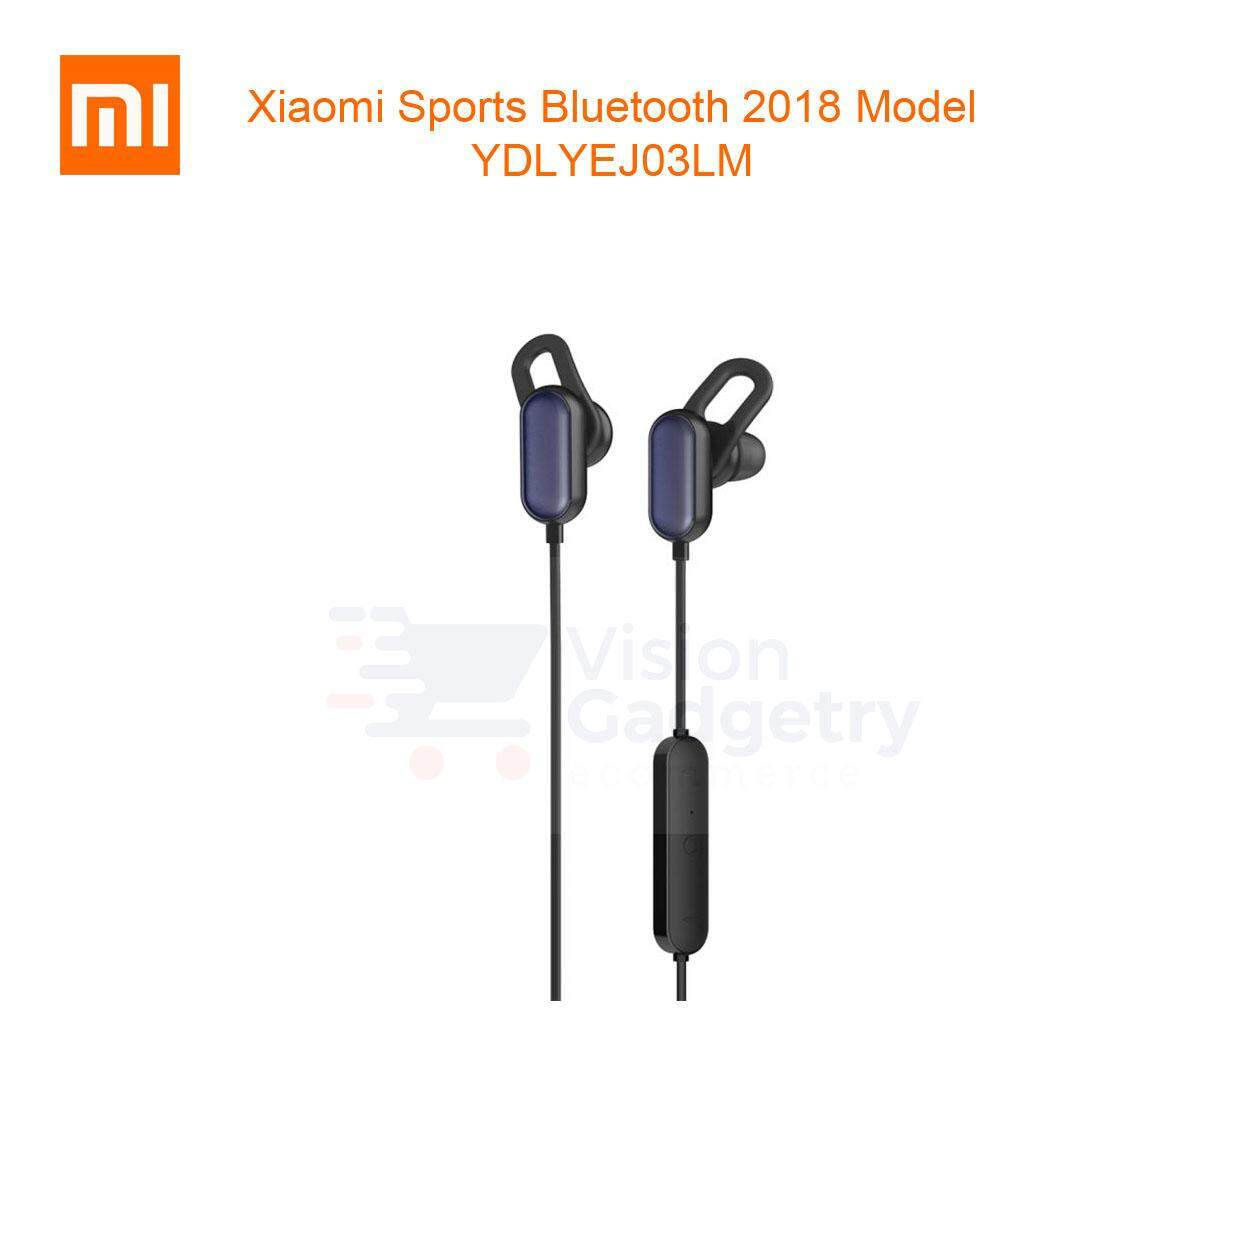 Xiaomi Sports Bluetooth Earphone In-ear Youth Edition YDLYEJ03LM BLACK